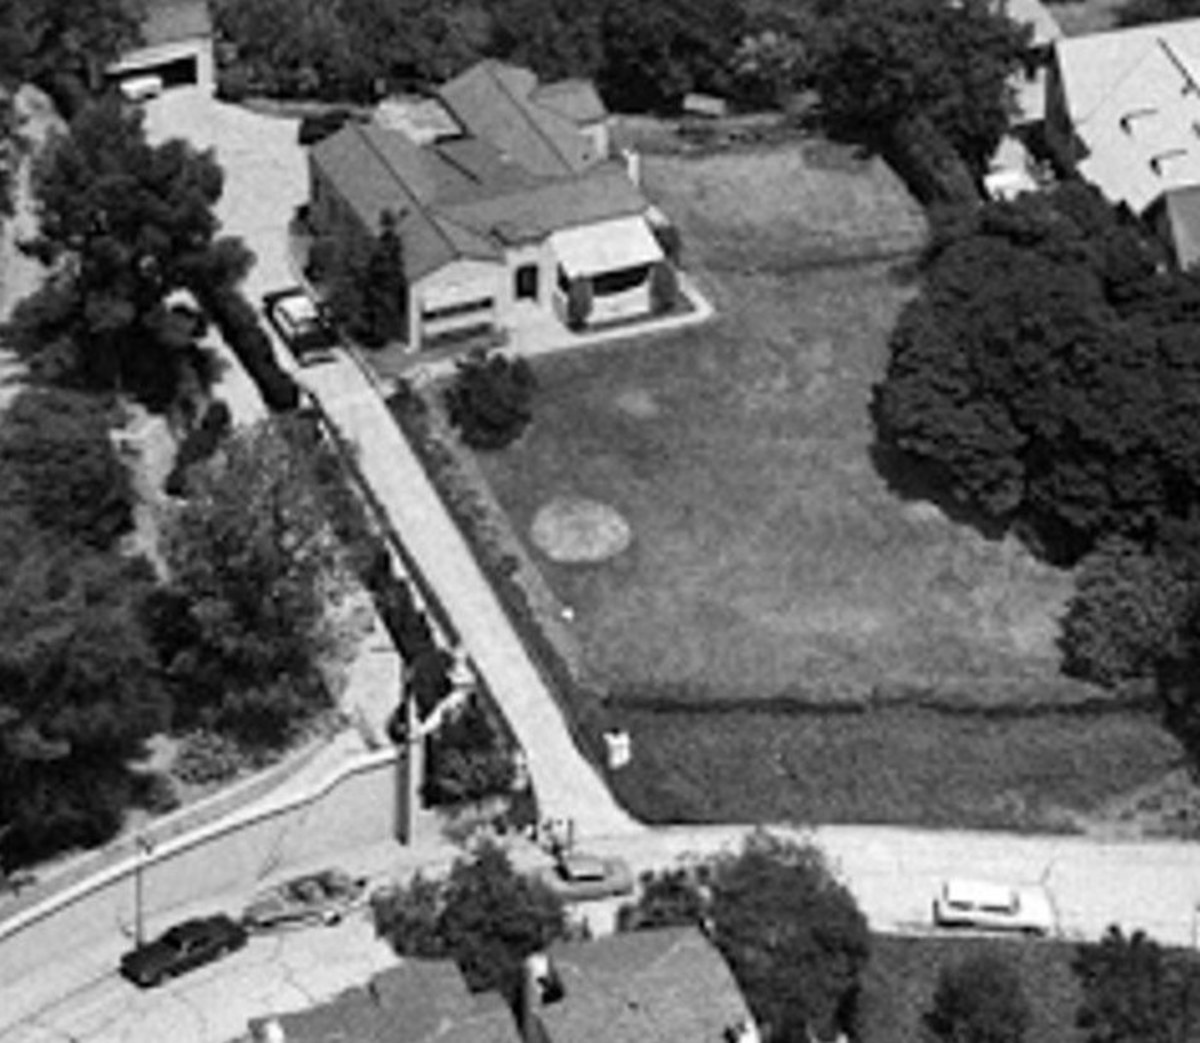 Aerial shot of the LaBianca residence. Leno's Thunderbird and boat can be seen on the left.